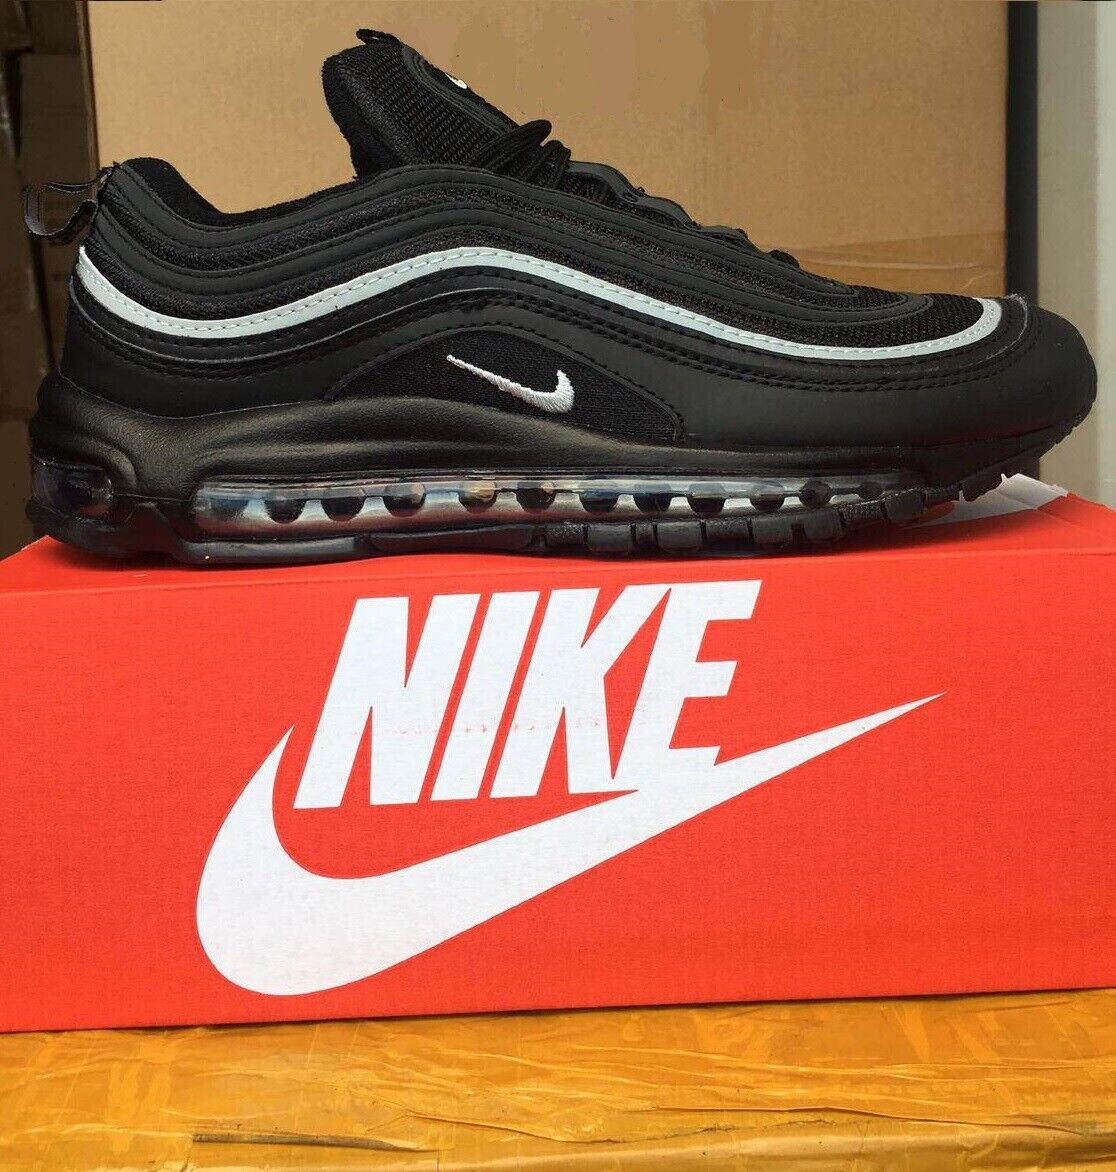 best website f488c d4fa7 Nike Air Max 97 triple all Black With White strip Brand New SIZES FROM UK  3-10